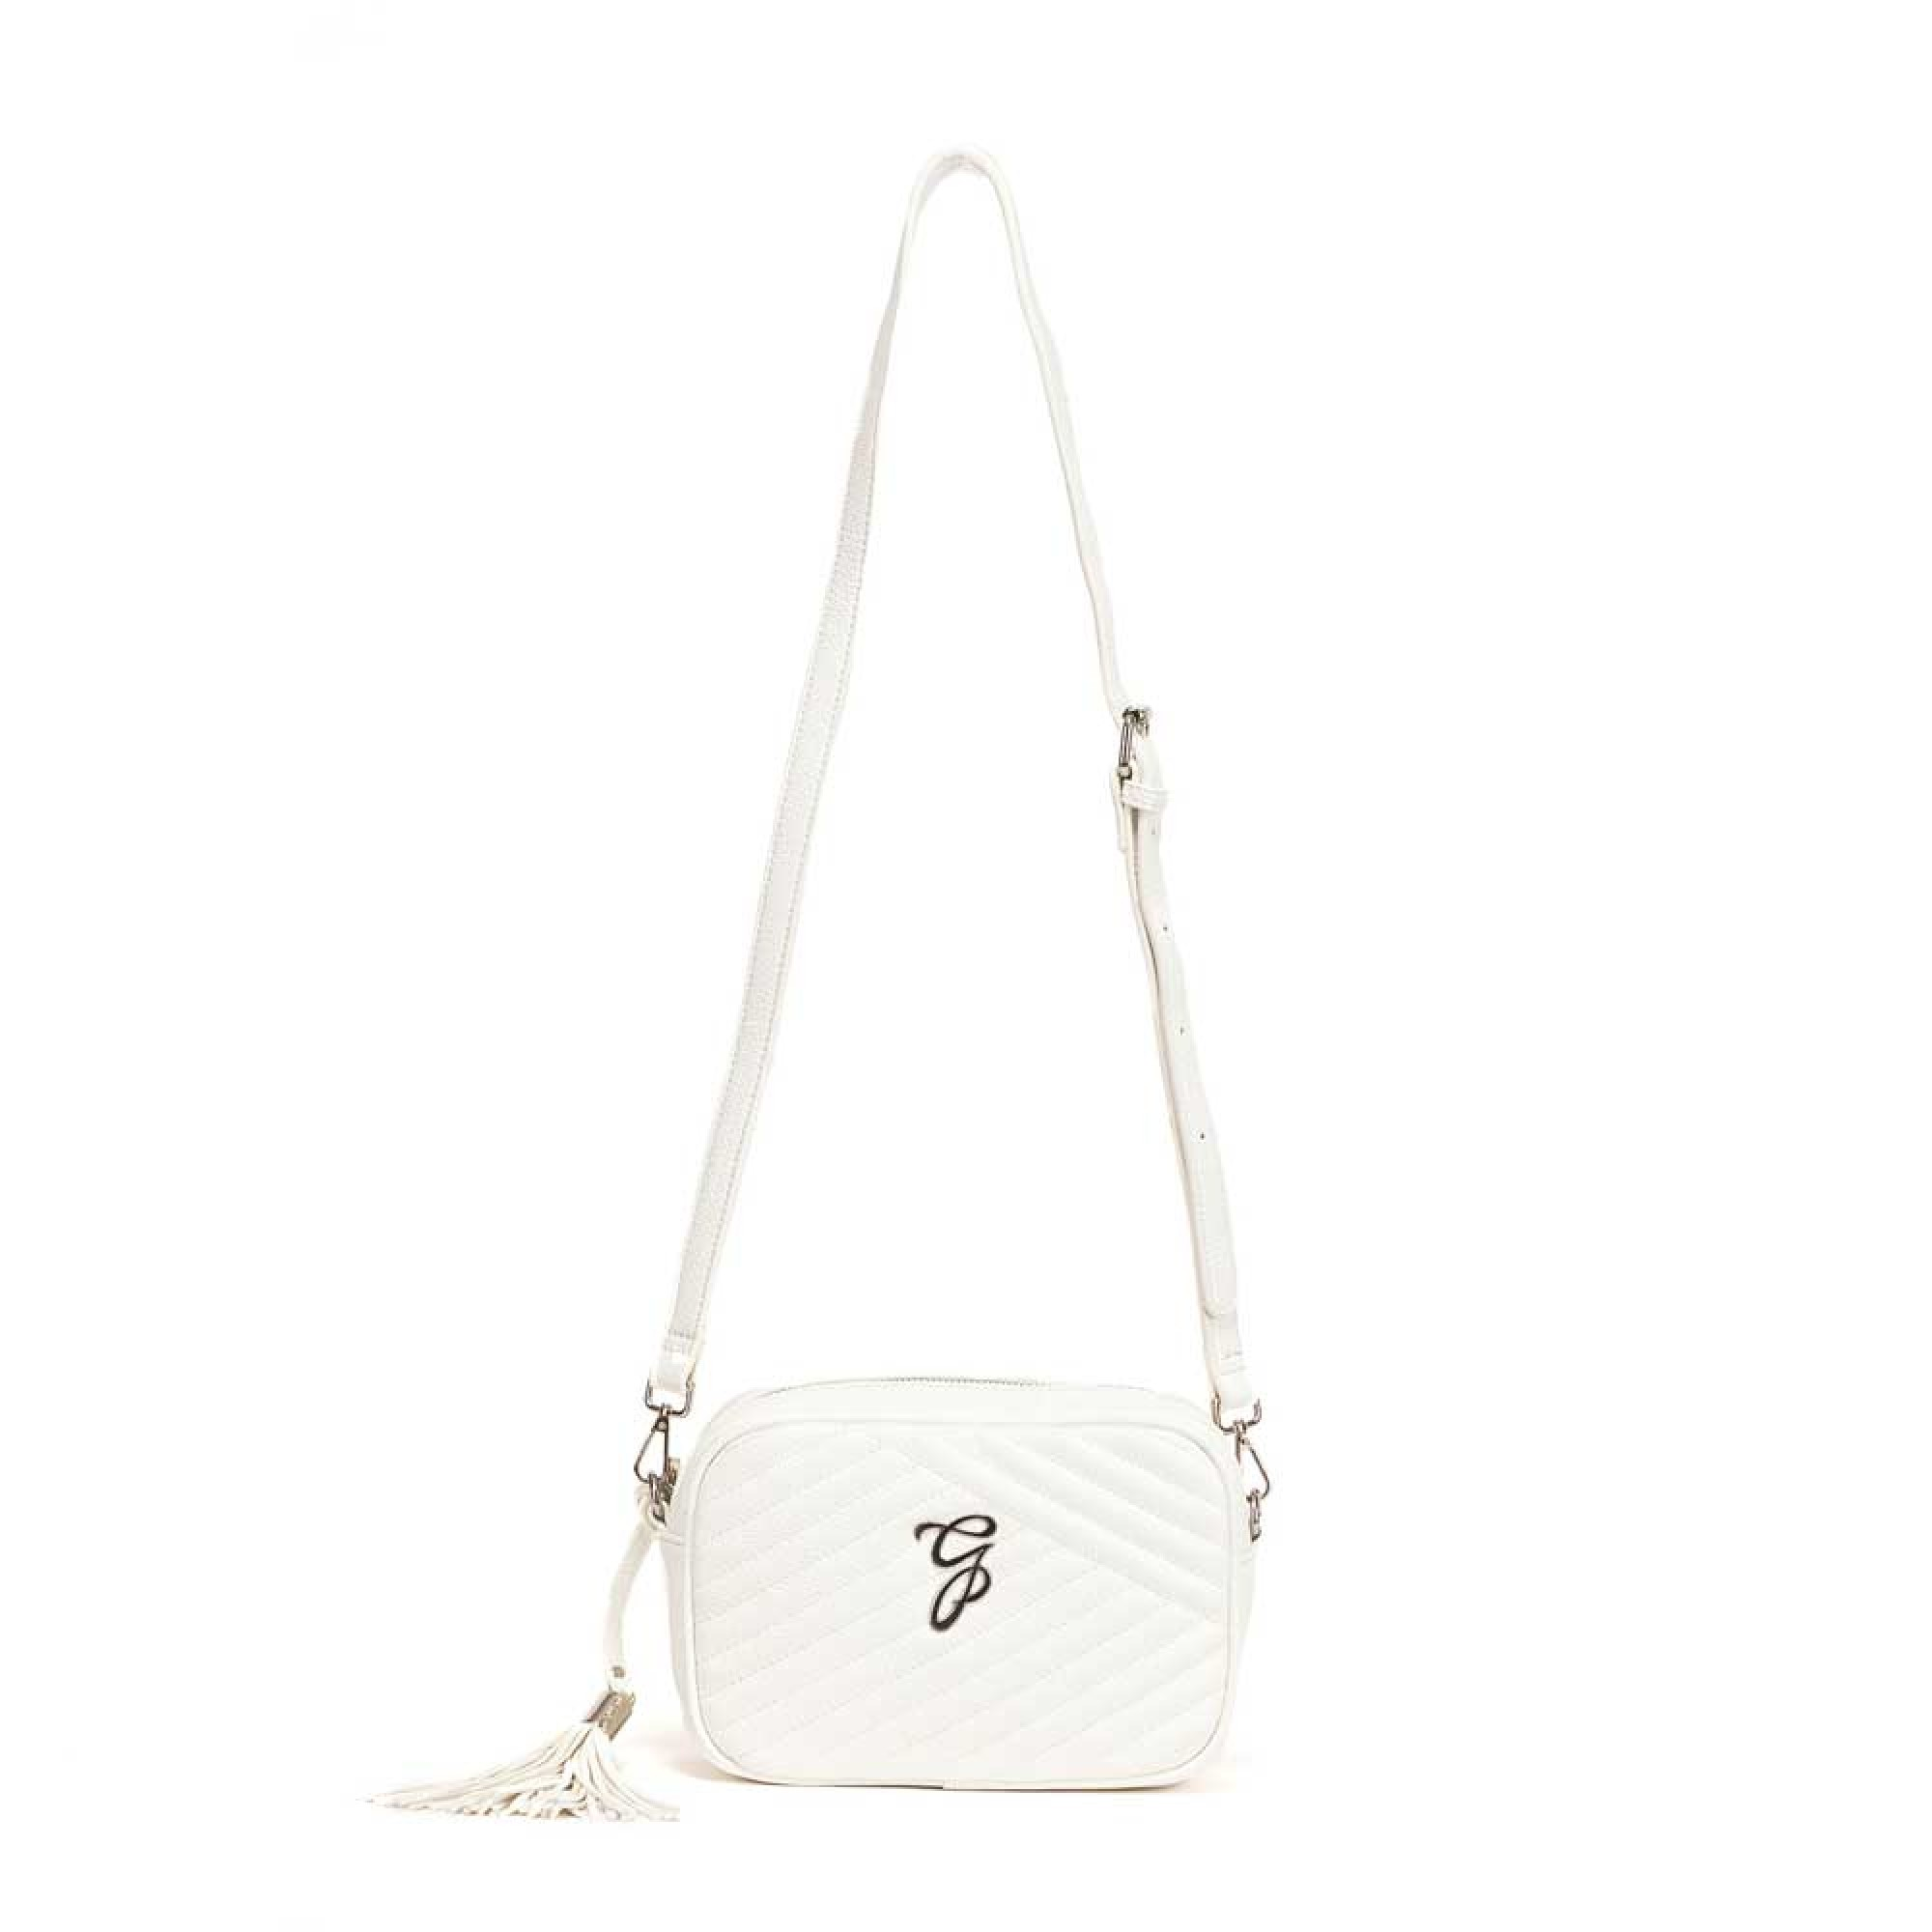 SHOULDER BAG - GBDA1450 - GAELLE PARIS